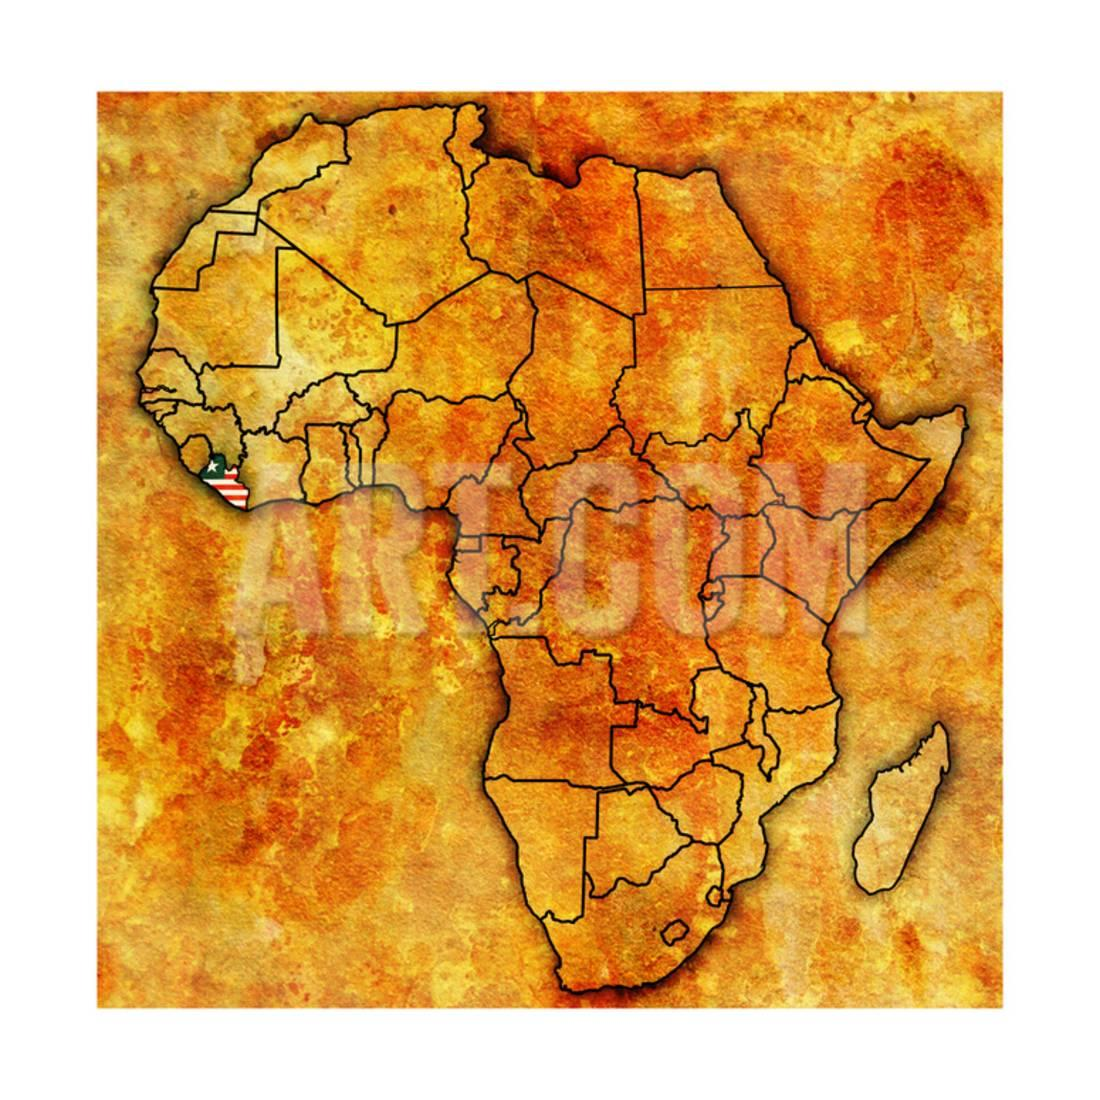 Liberia On Africa Map.Liberia On Actual Map Of Africa Print Wall Art By Michal812